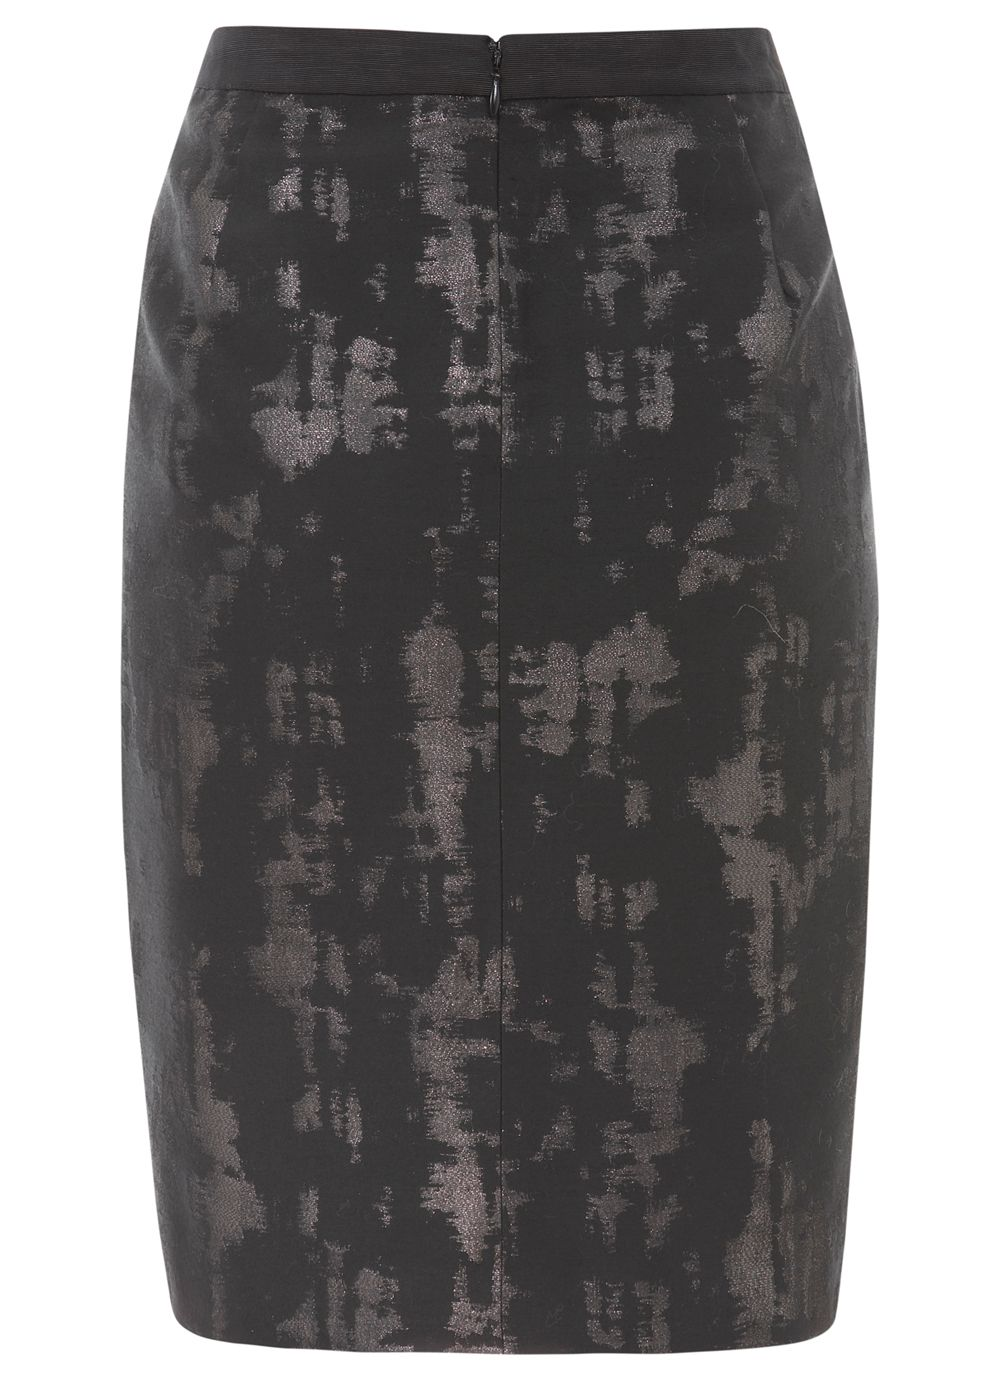 Black & pewter jacquard pencil skirt